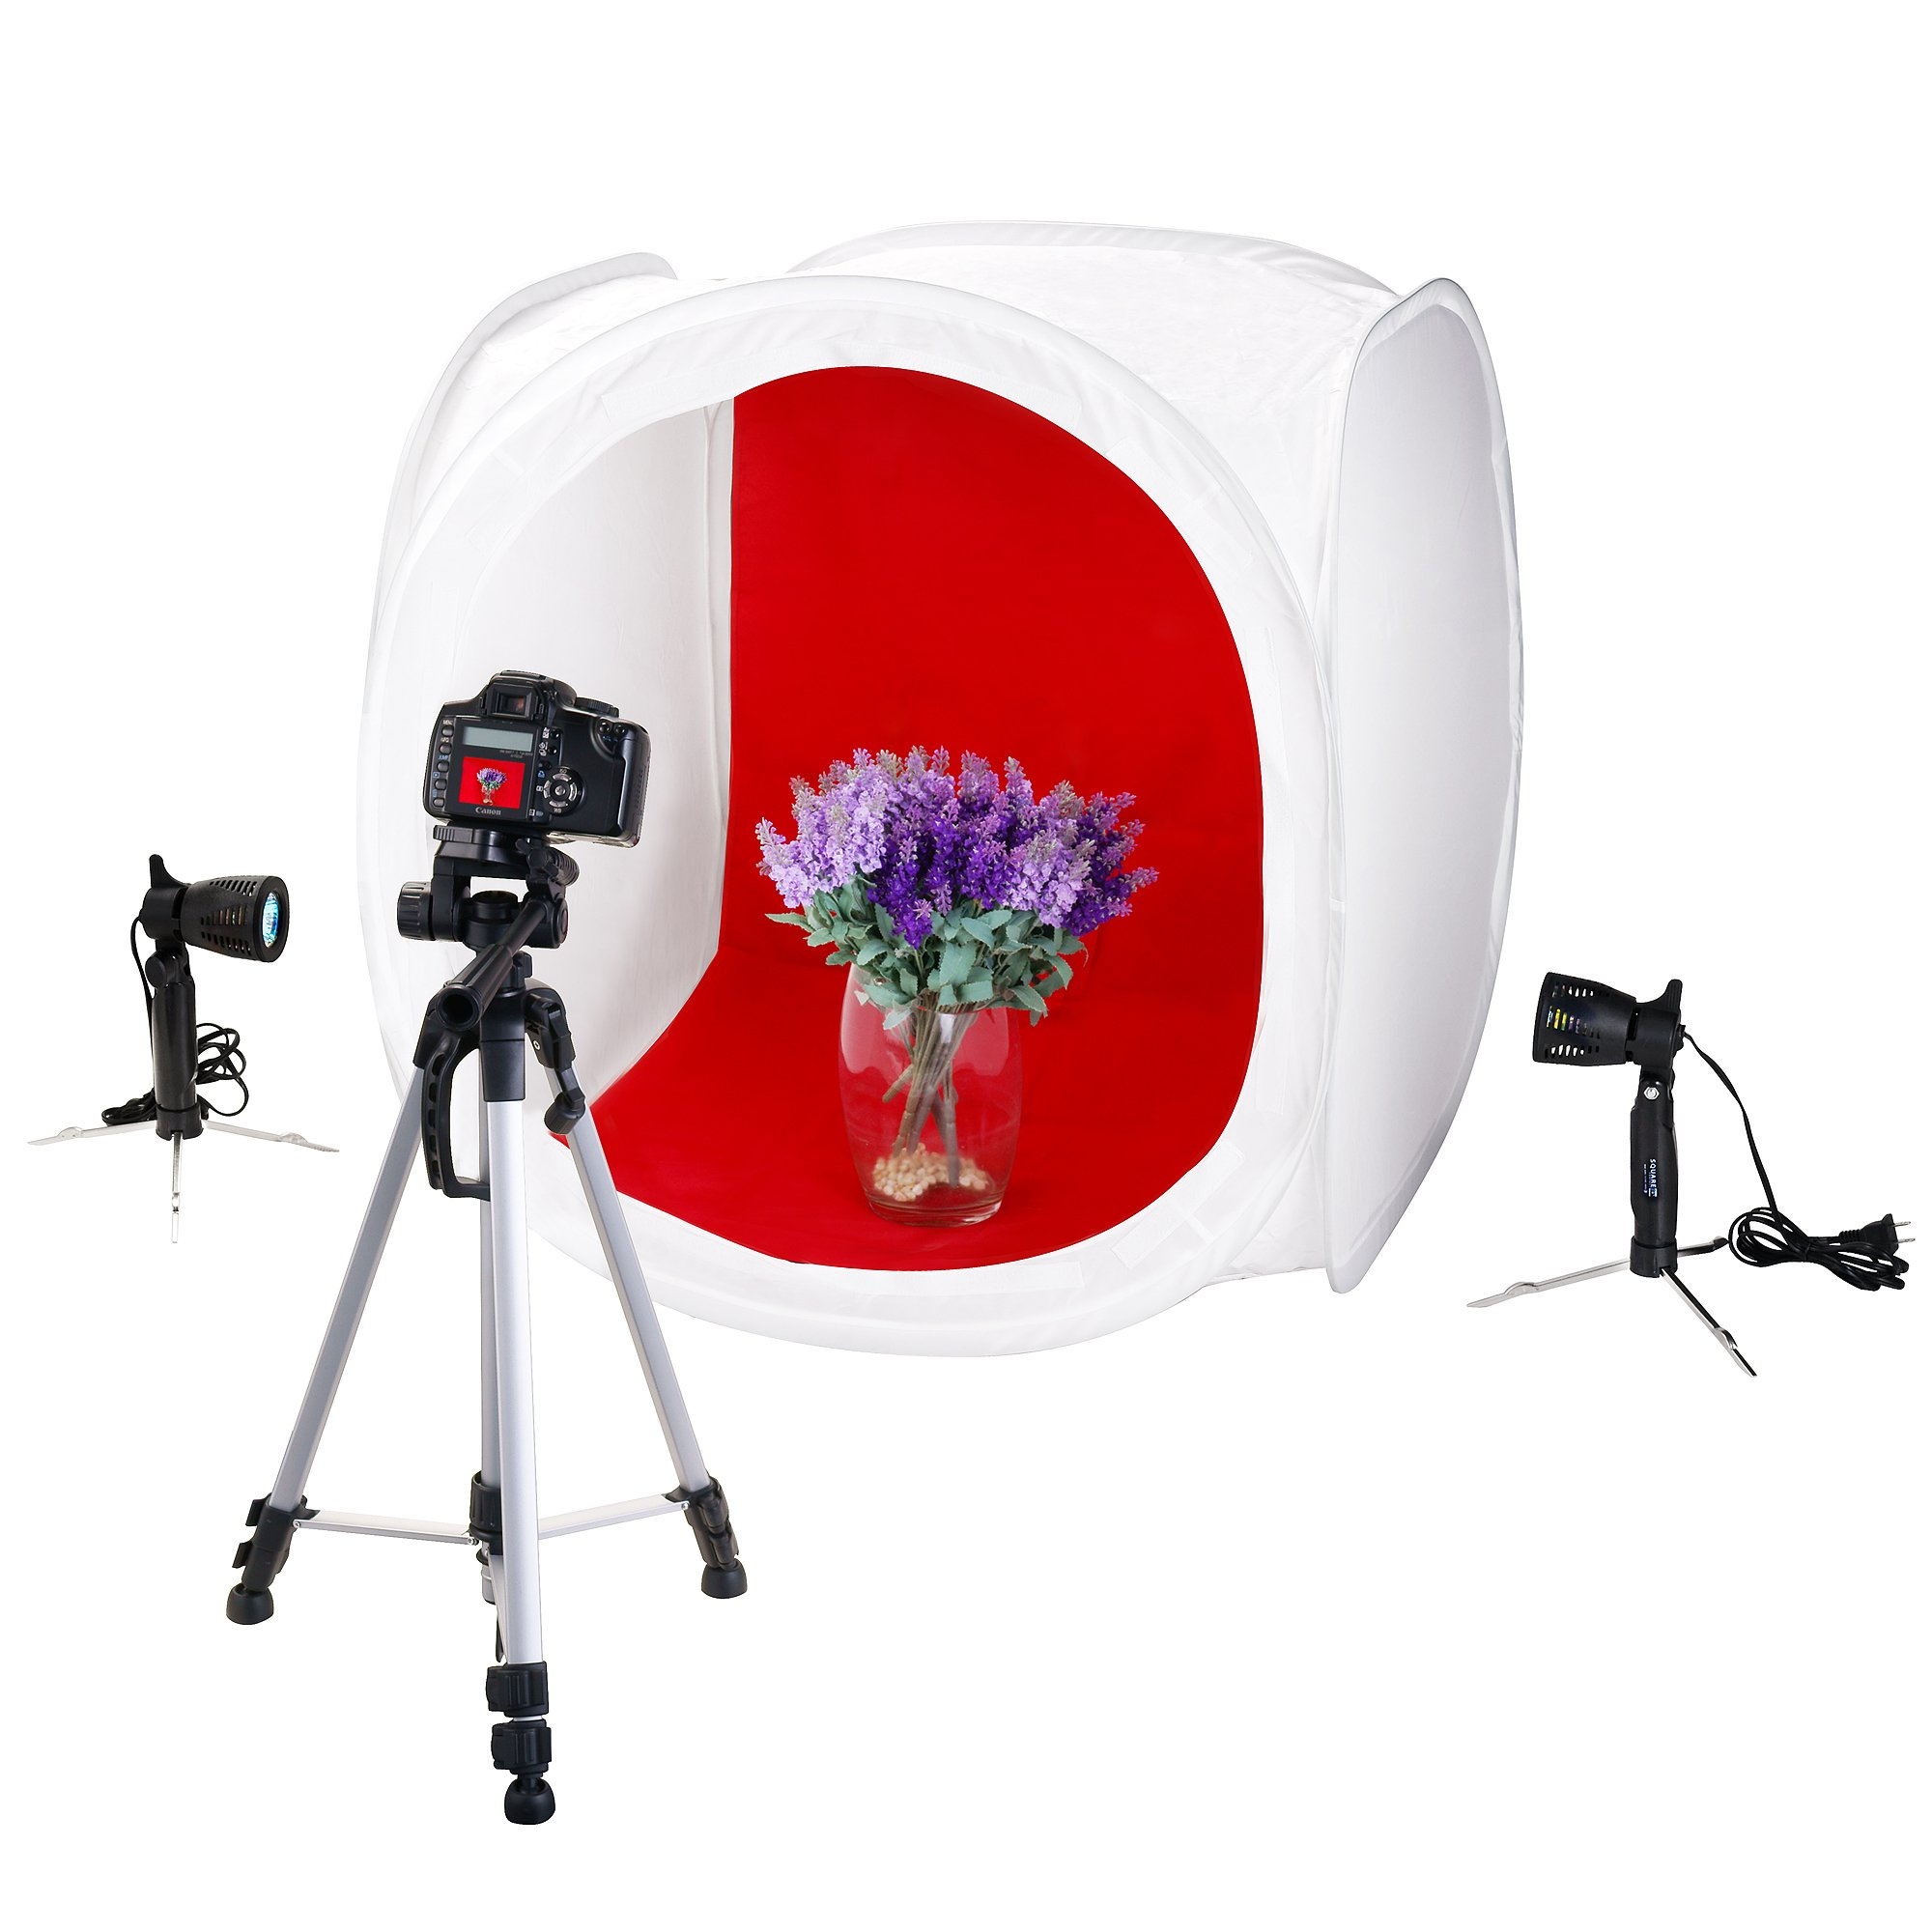 3090 Square Perfect Professional Quality Premium Studio In a Box Light Tent Cube for Quality Photography by SQUARE PERFECT